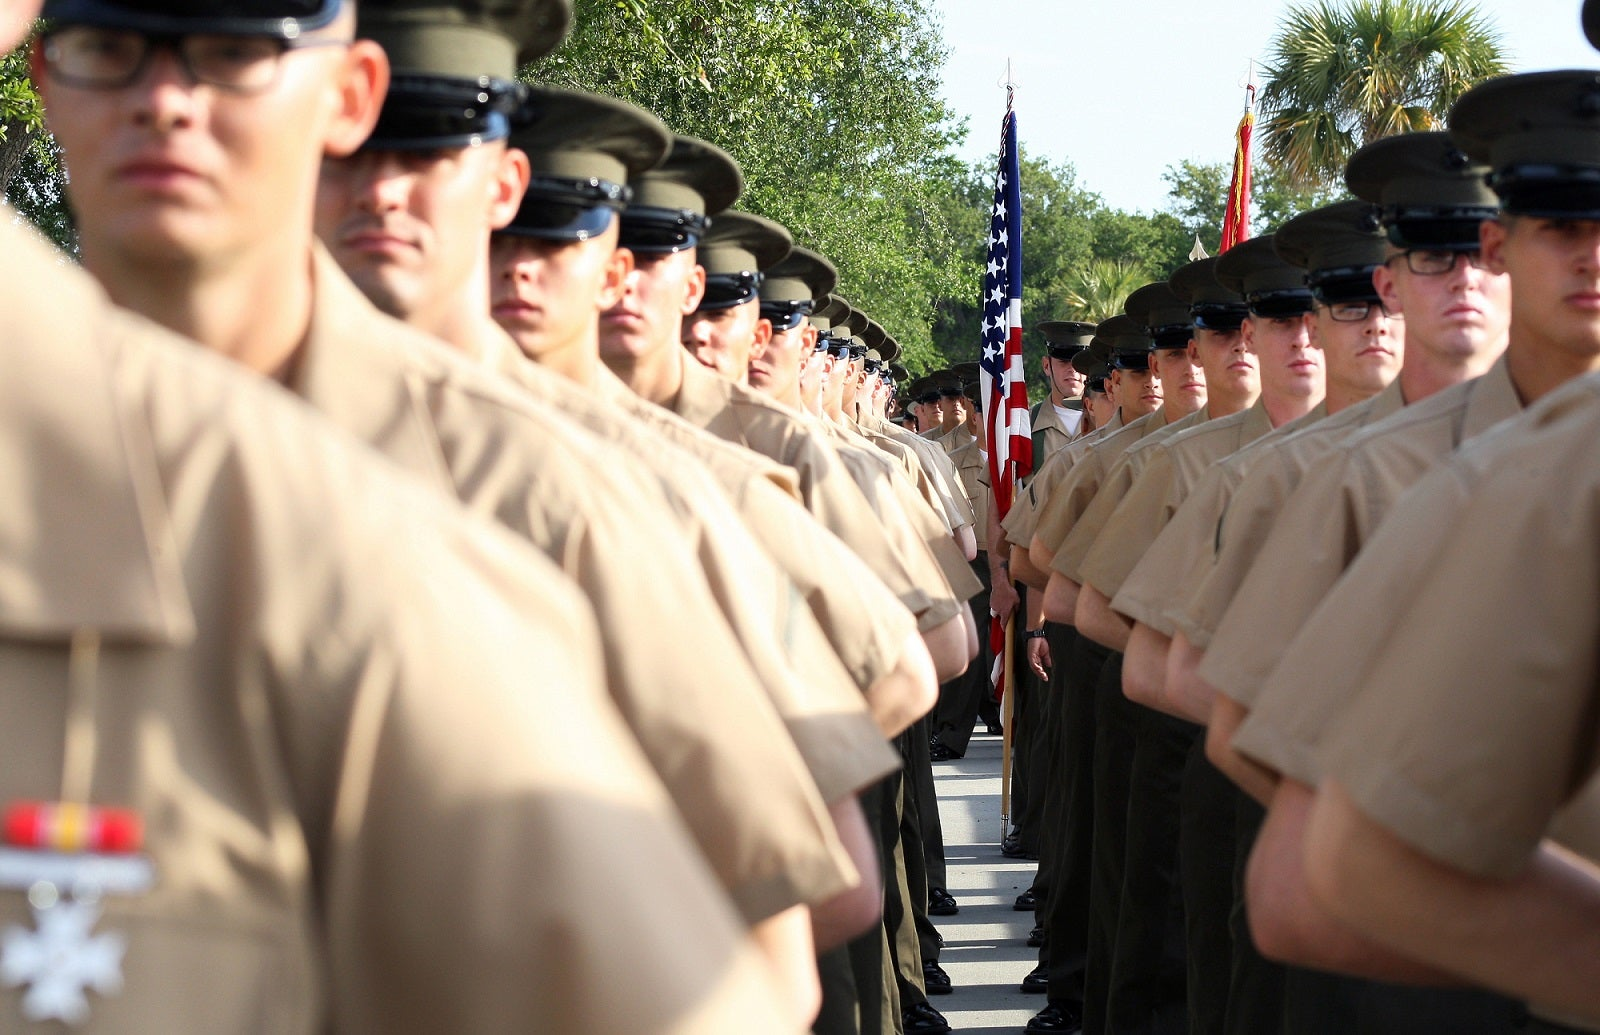 New Marine recruits won't start boot camp at Parris Island for 'at least a couple weeks' amid COVID-19 pandemic, commandant says